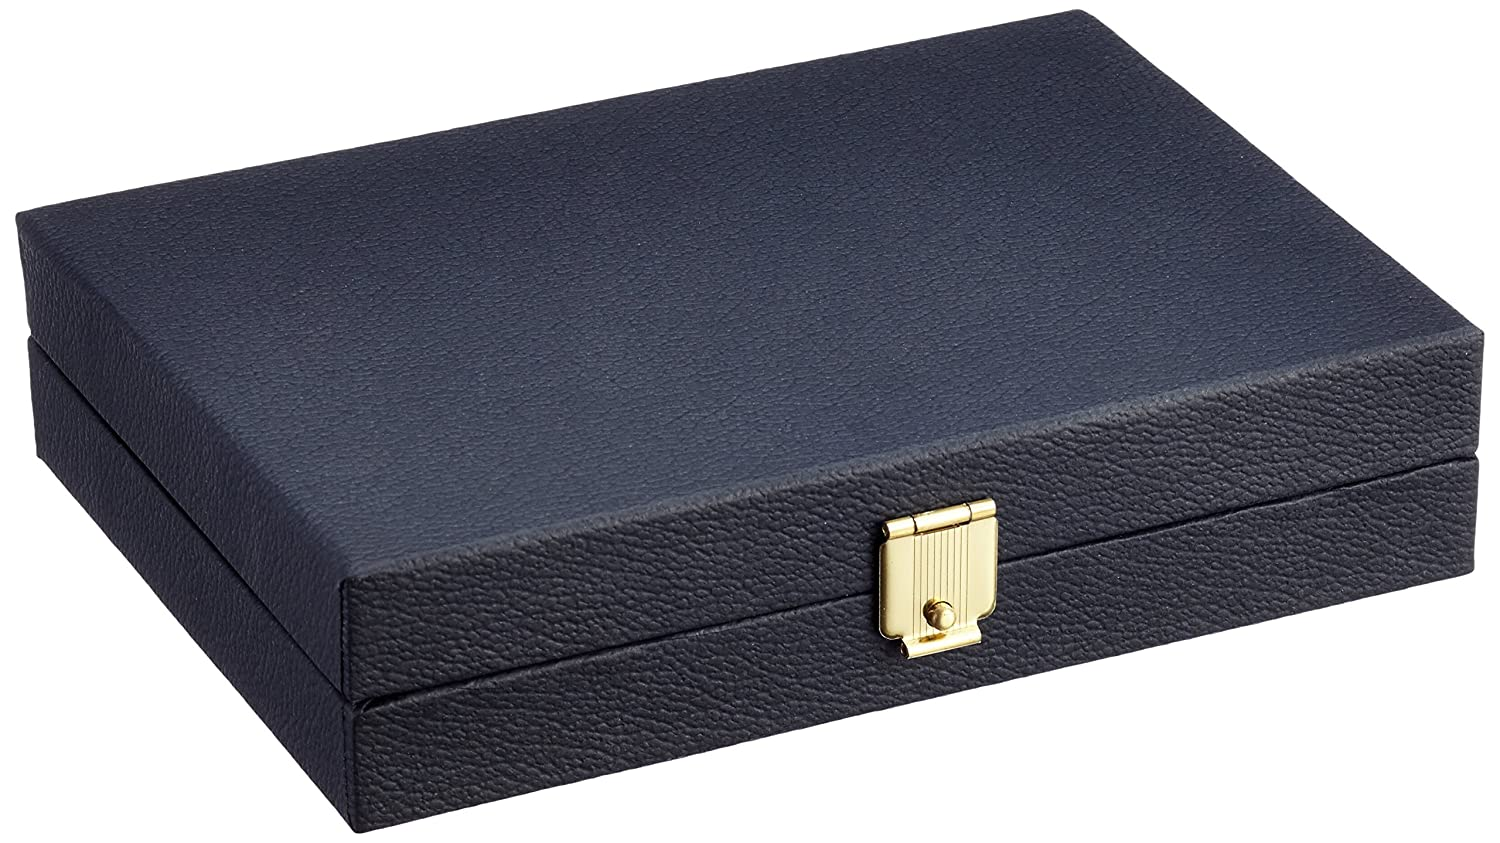 neoLab 1-6257 Object carrier storage box for 25 object carriers, 140 mm x 100 mm x 35 mm